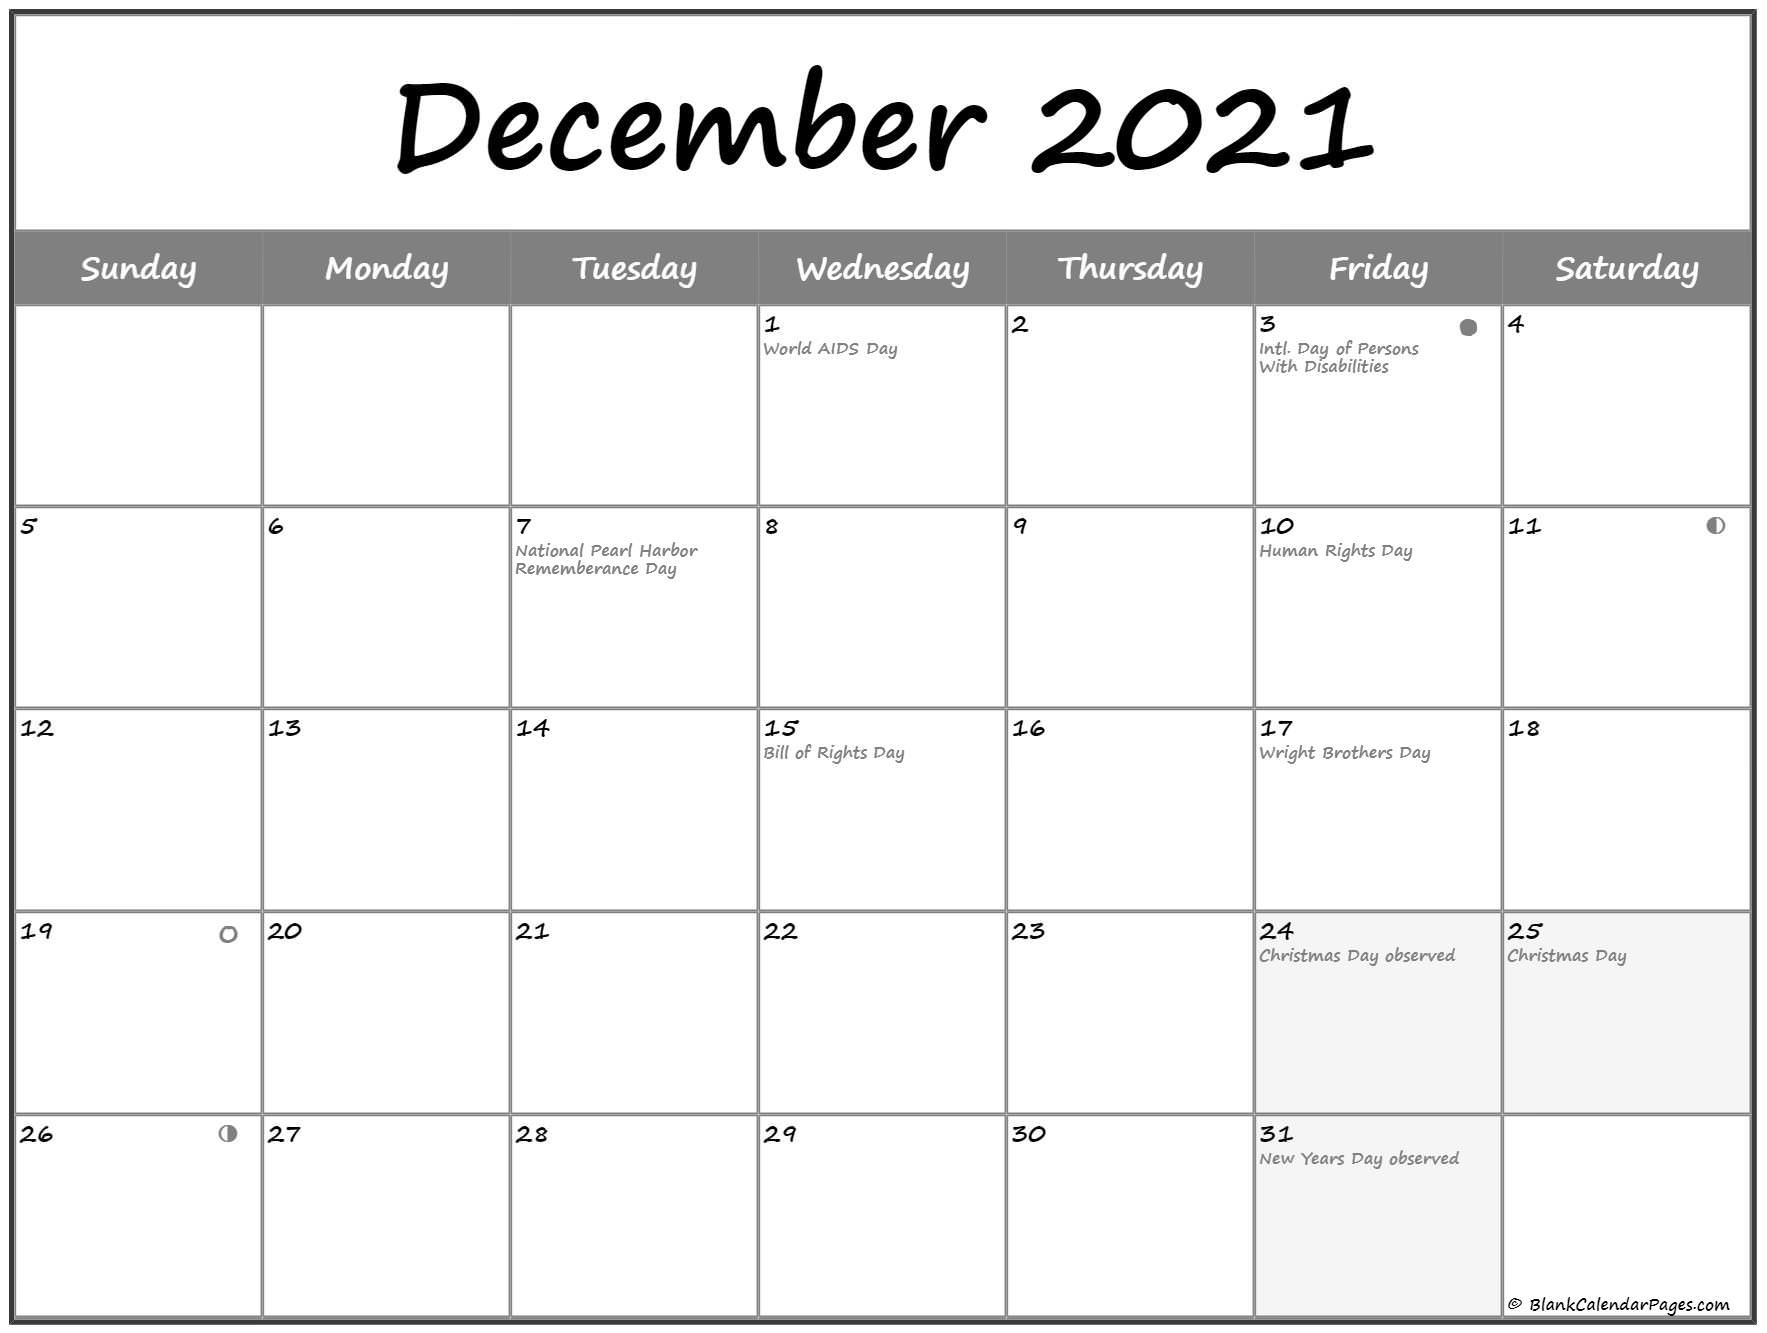 Collect December 2021 Moon Phase